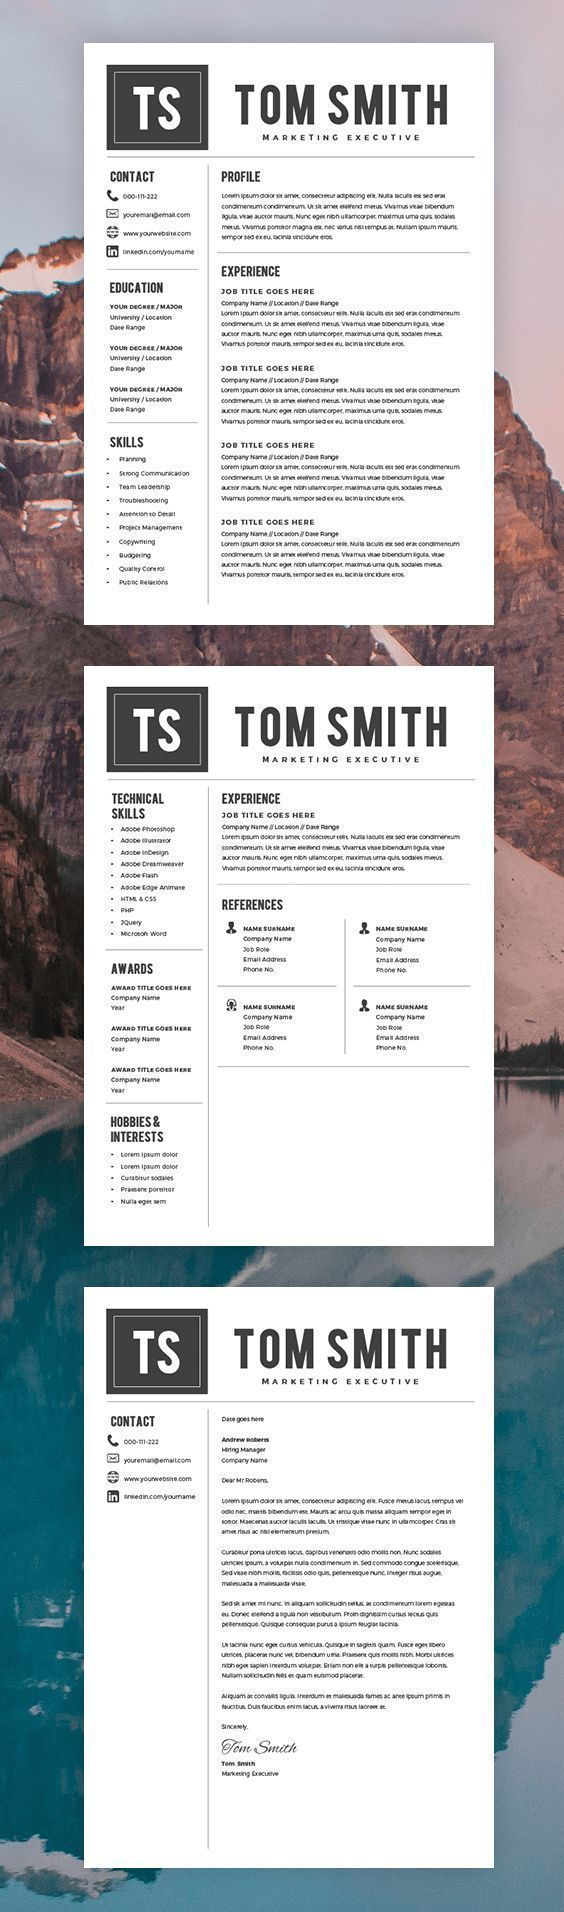 Modern Resume Template - Free Cover Letter - CV Template - MS Word on Mac / PC - Sample - Best Resume Templates - Instant Download